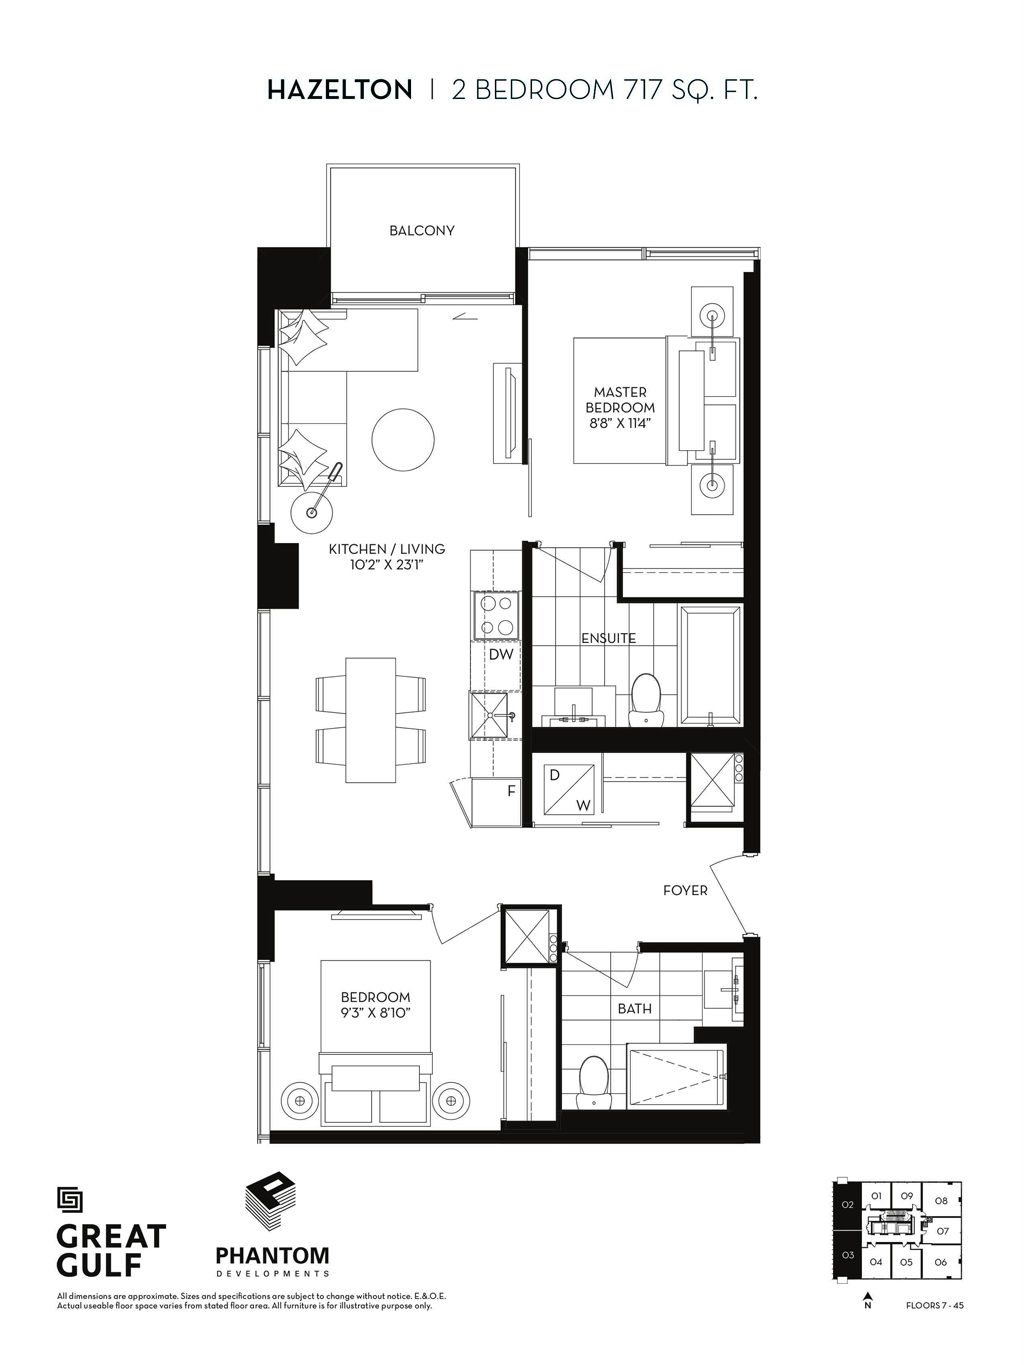 8 CUMBERLAND VIP ACCESS - FLOORPLANS TWO BEDROOM 717 SQ FT